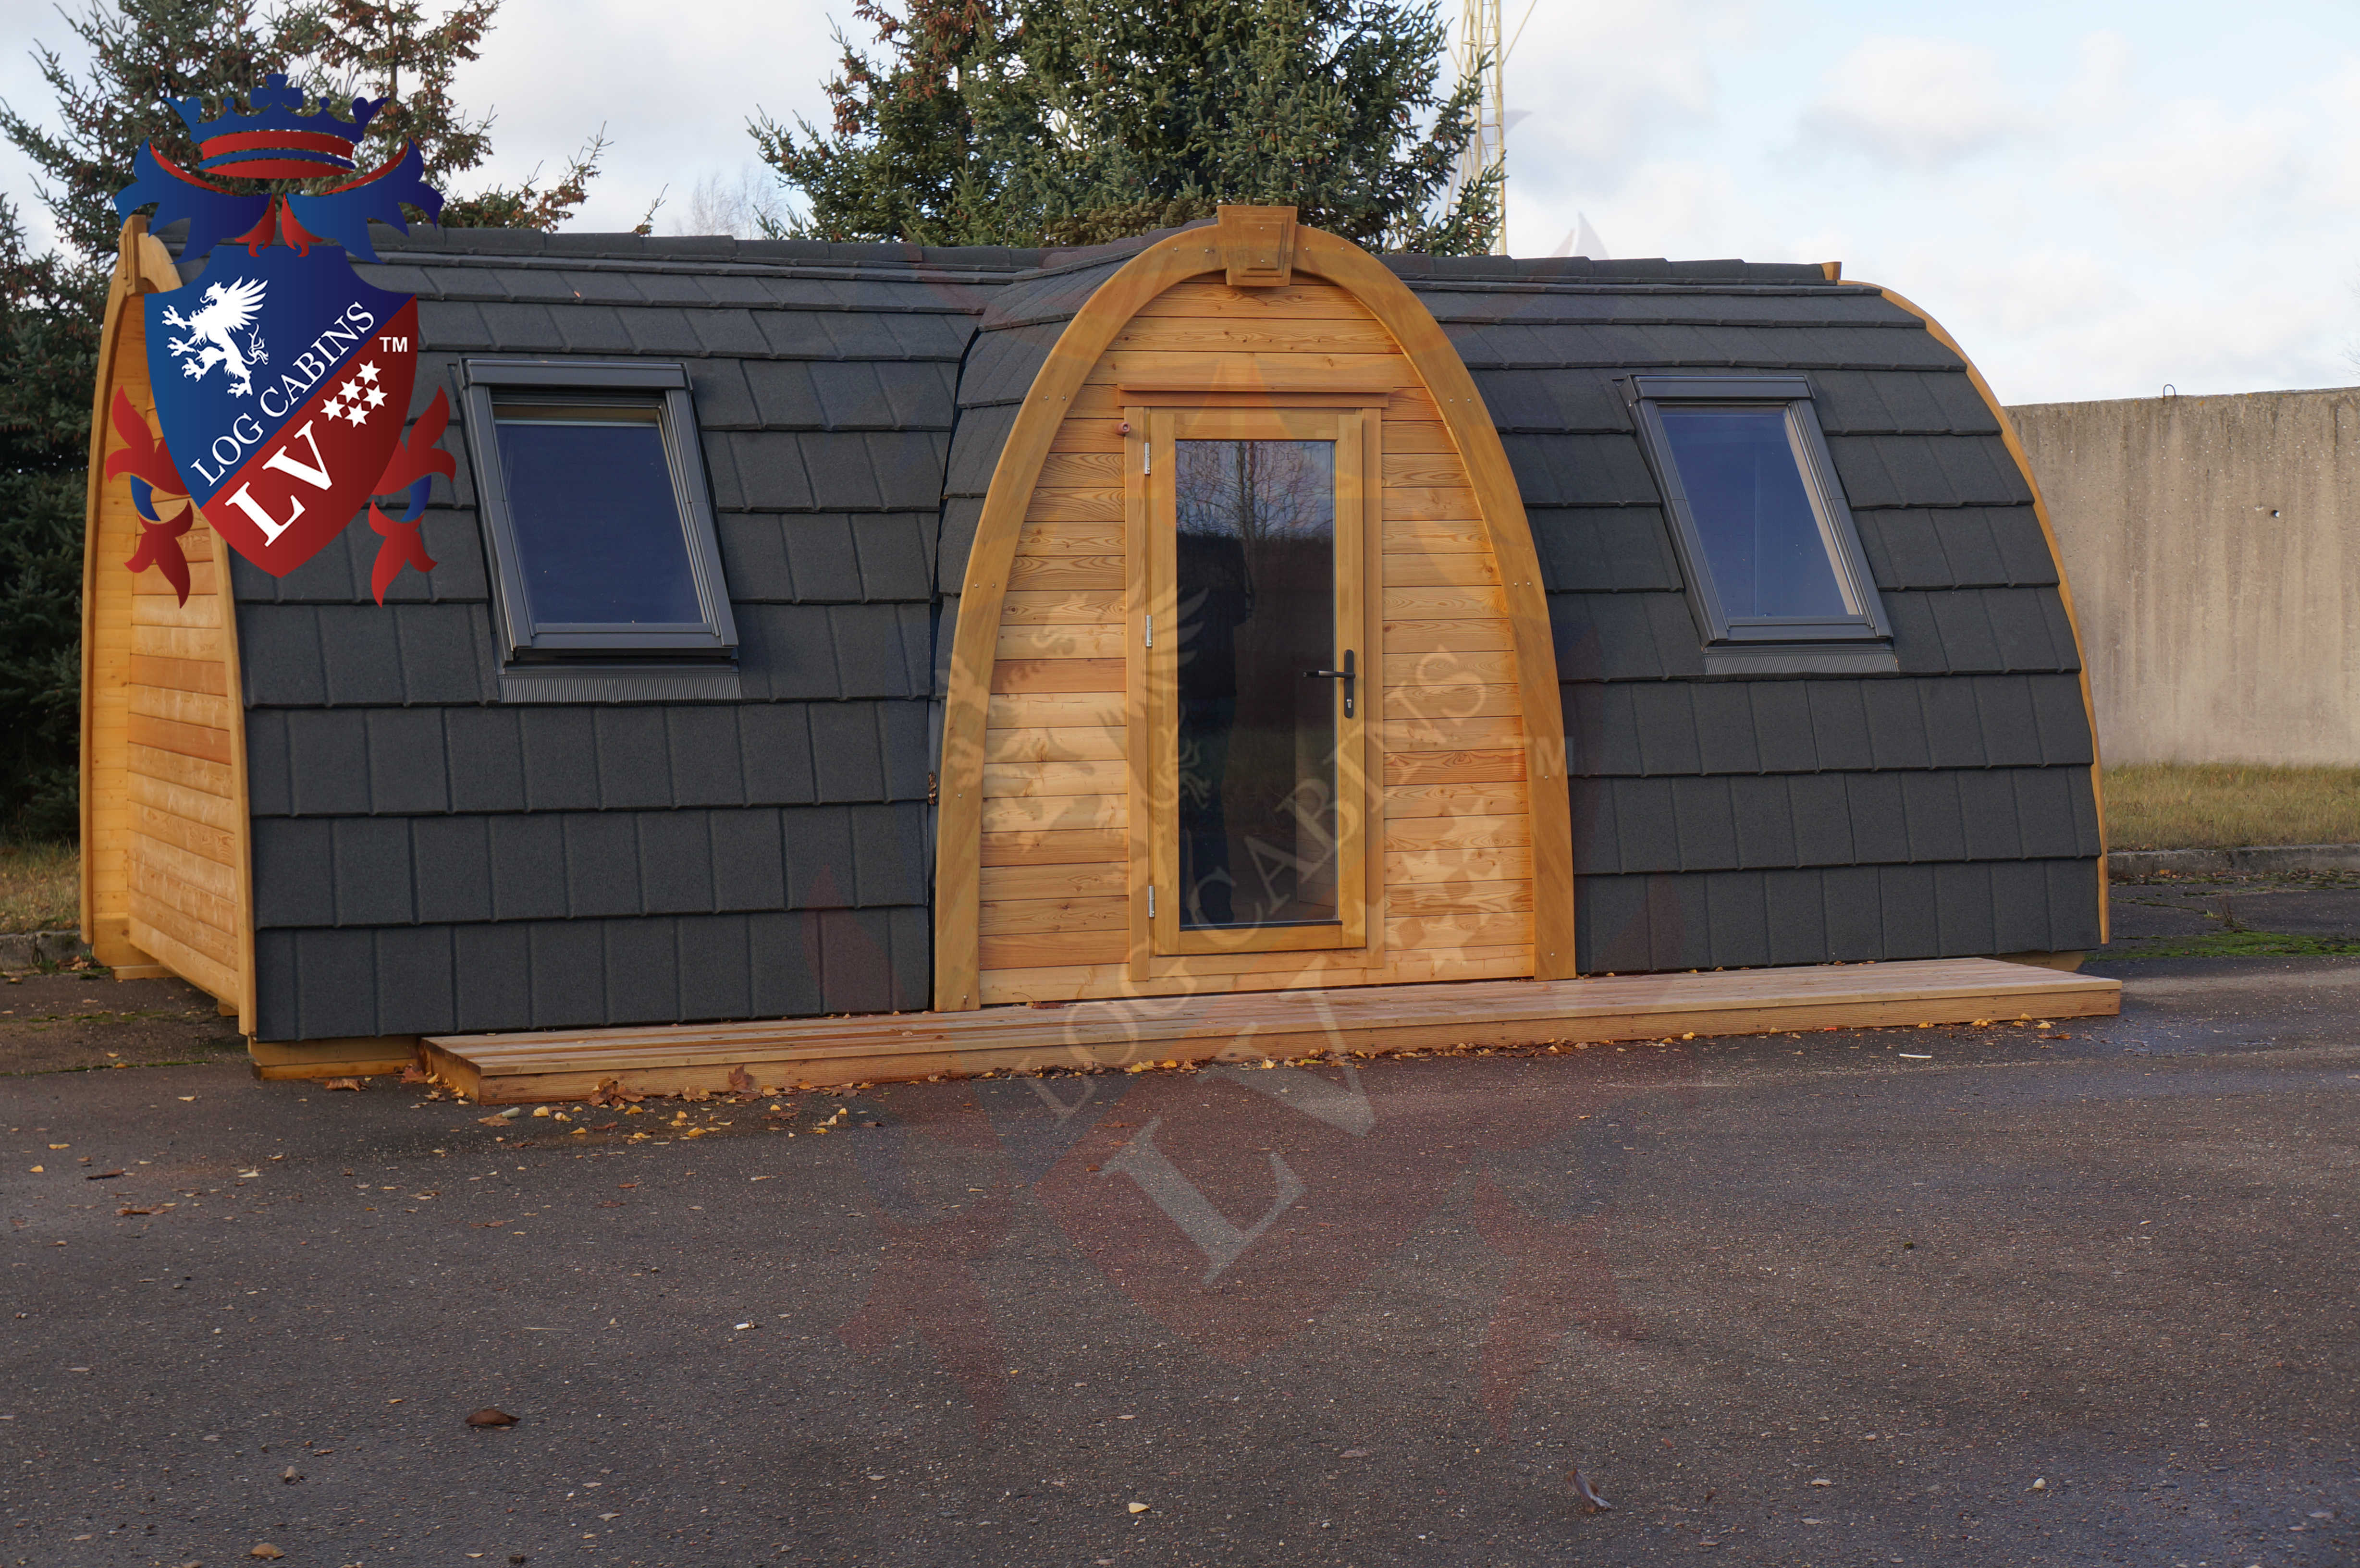 camping-pods-2017-09